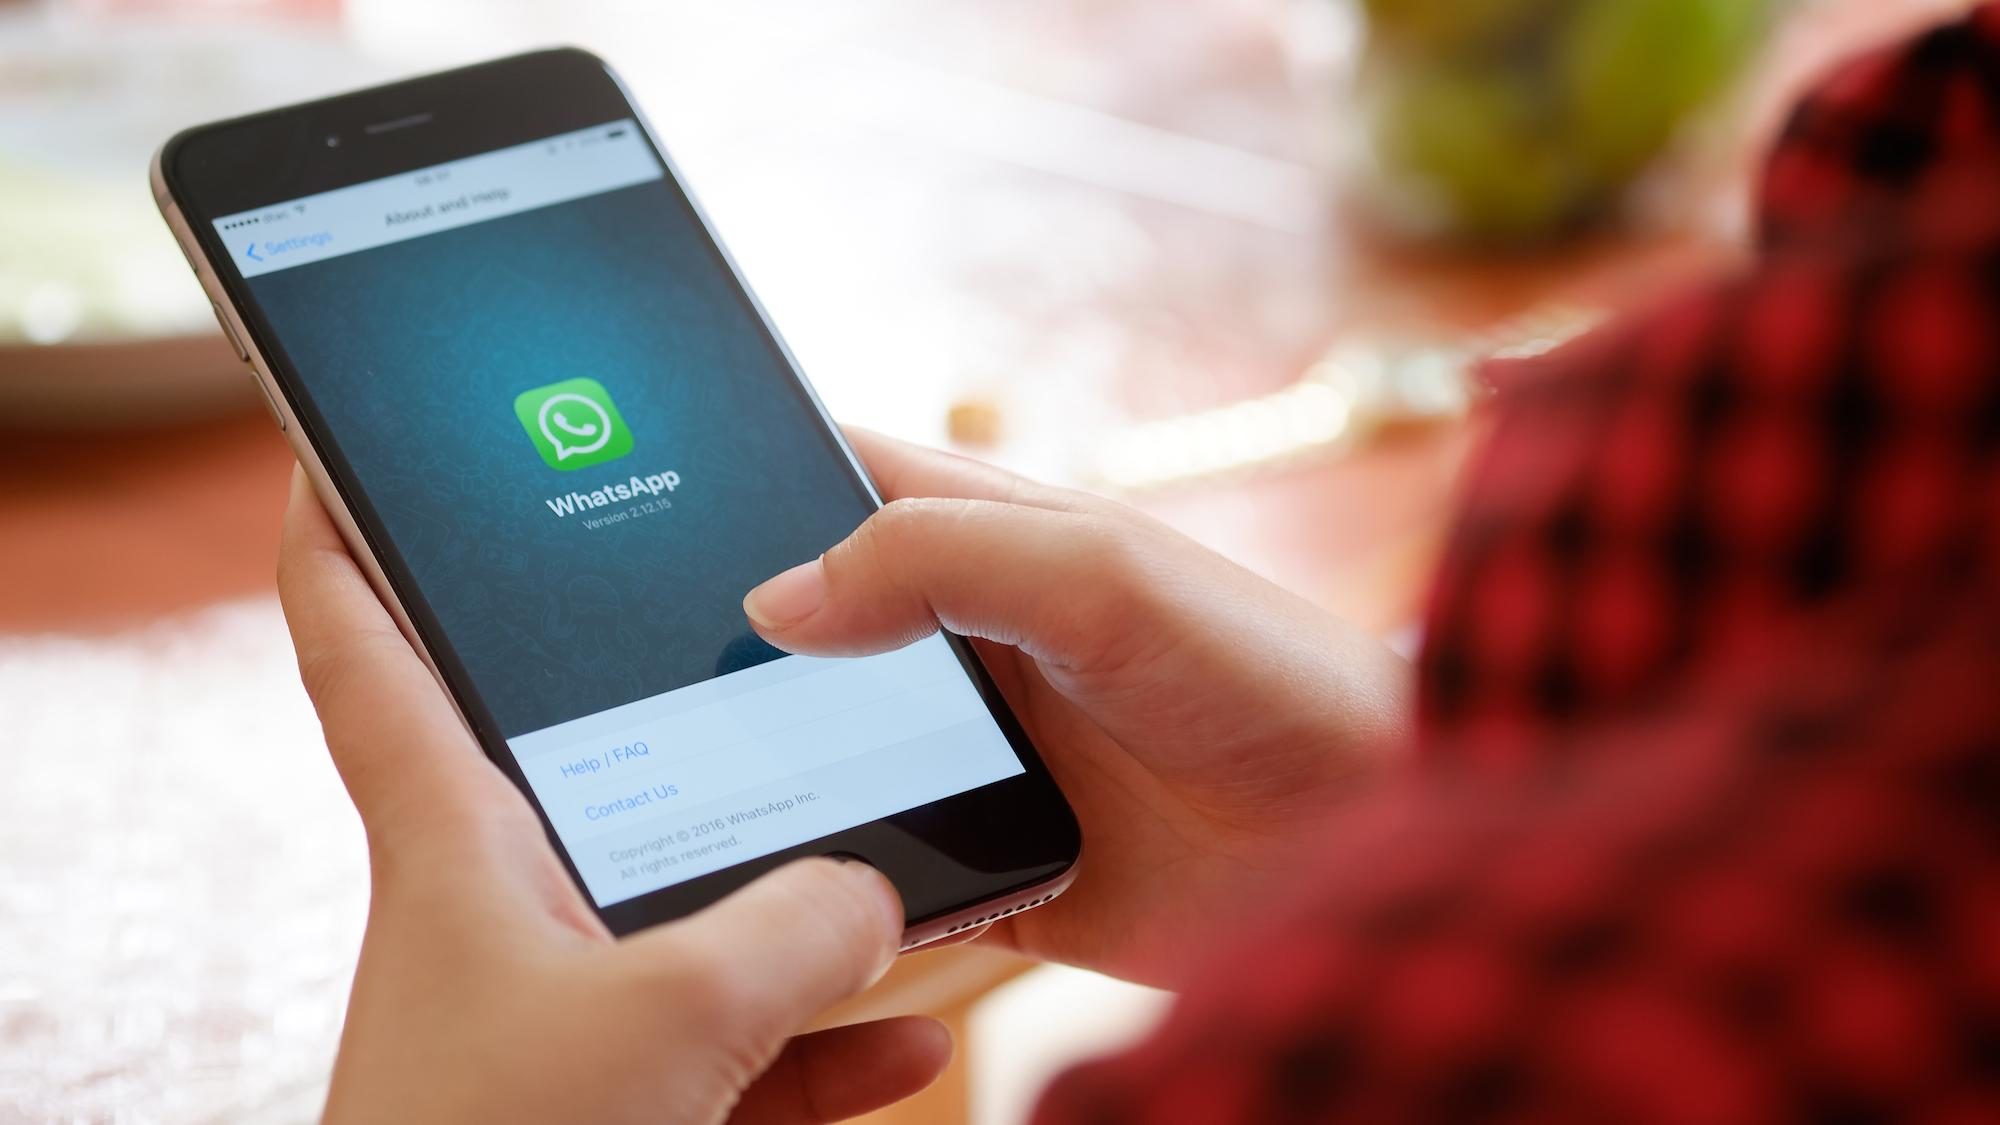 Your Whatsapp Chats Are Being Read By Facebook, And There's Nothing You Can Do About It!